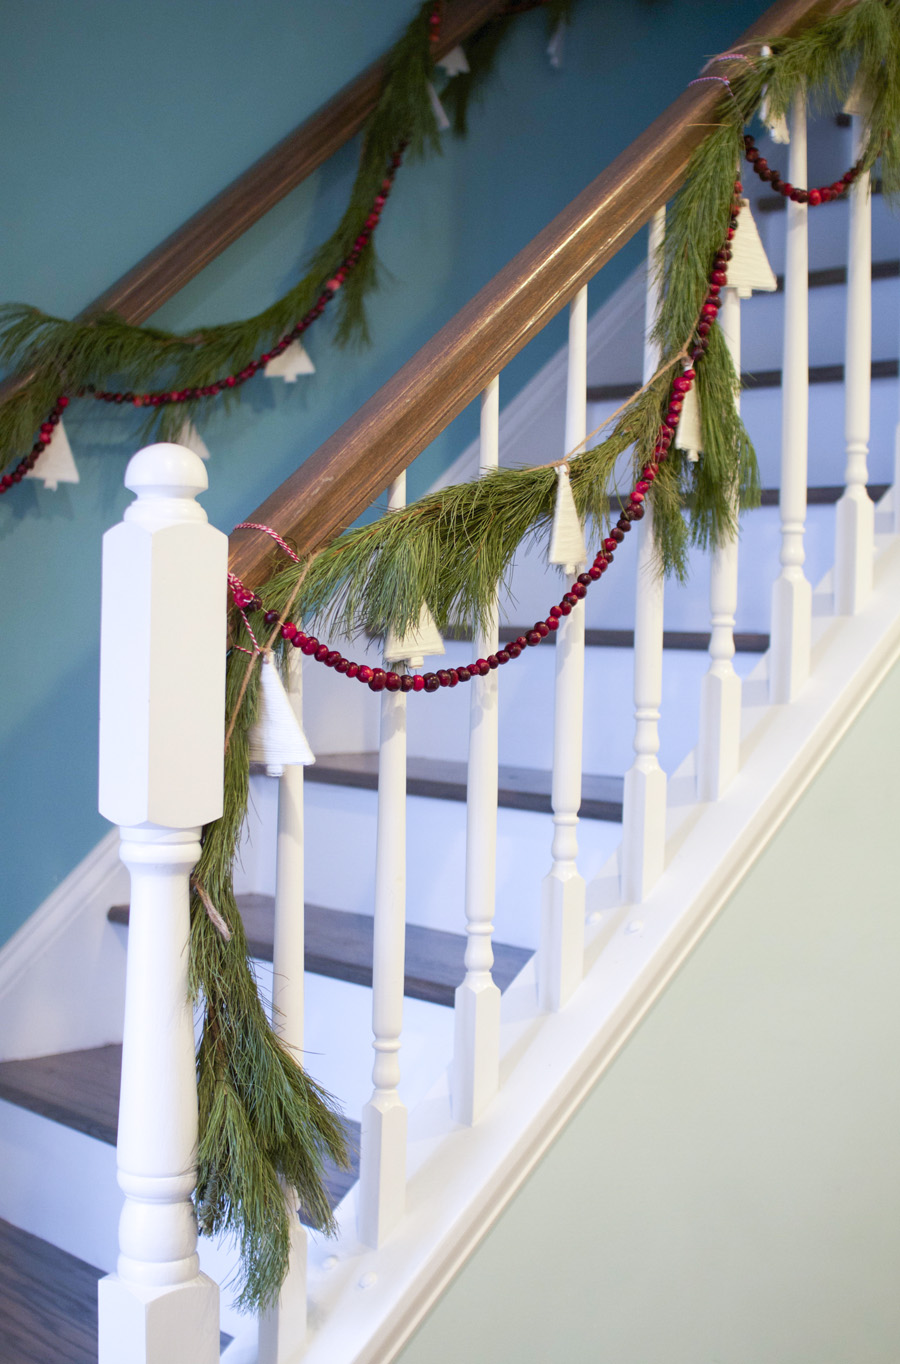 Our Christmassy stairwell, featuring pine, cranberries and white yarn Christmas tree garland.